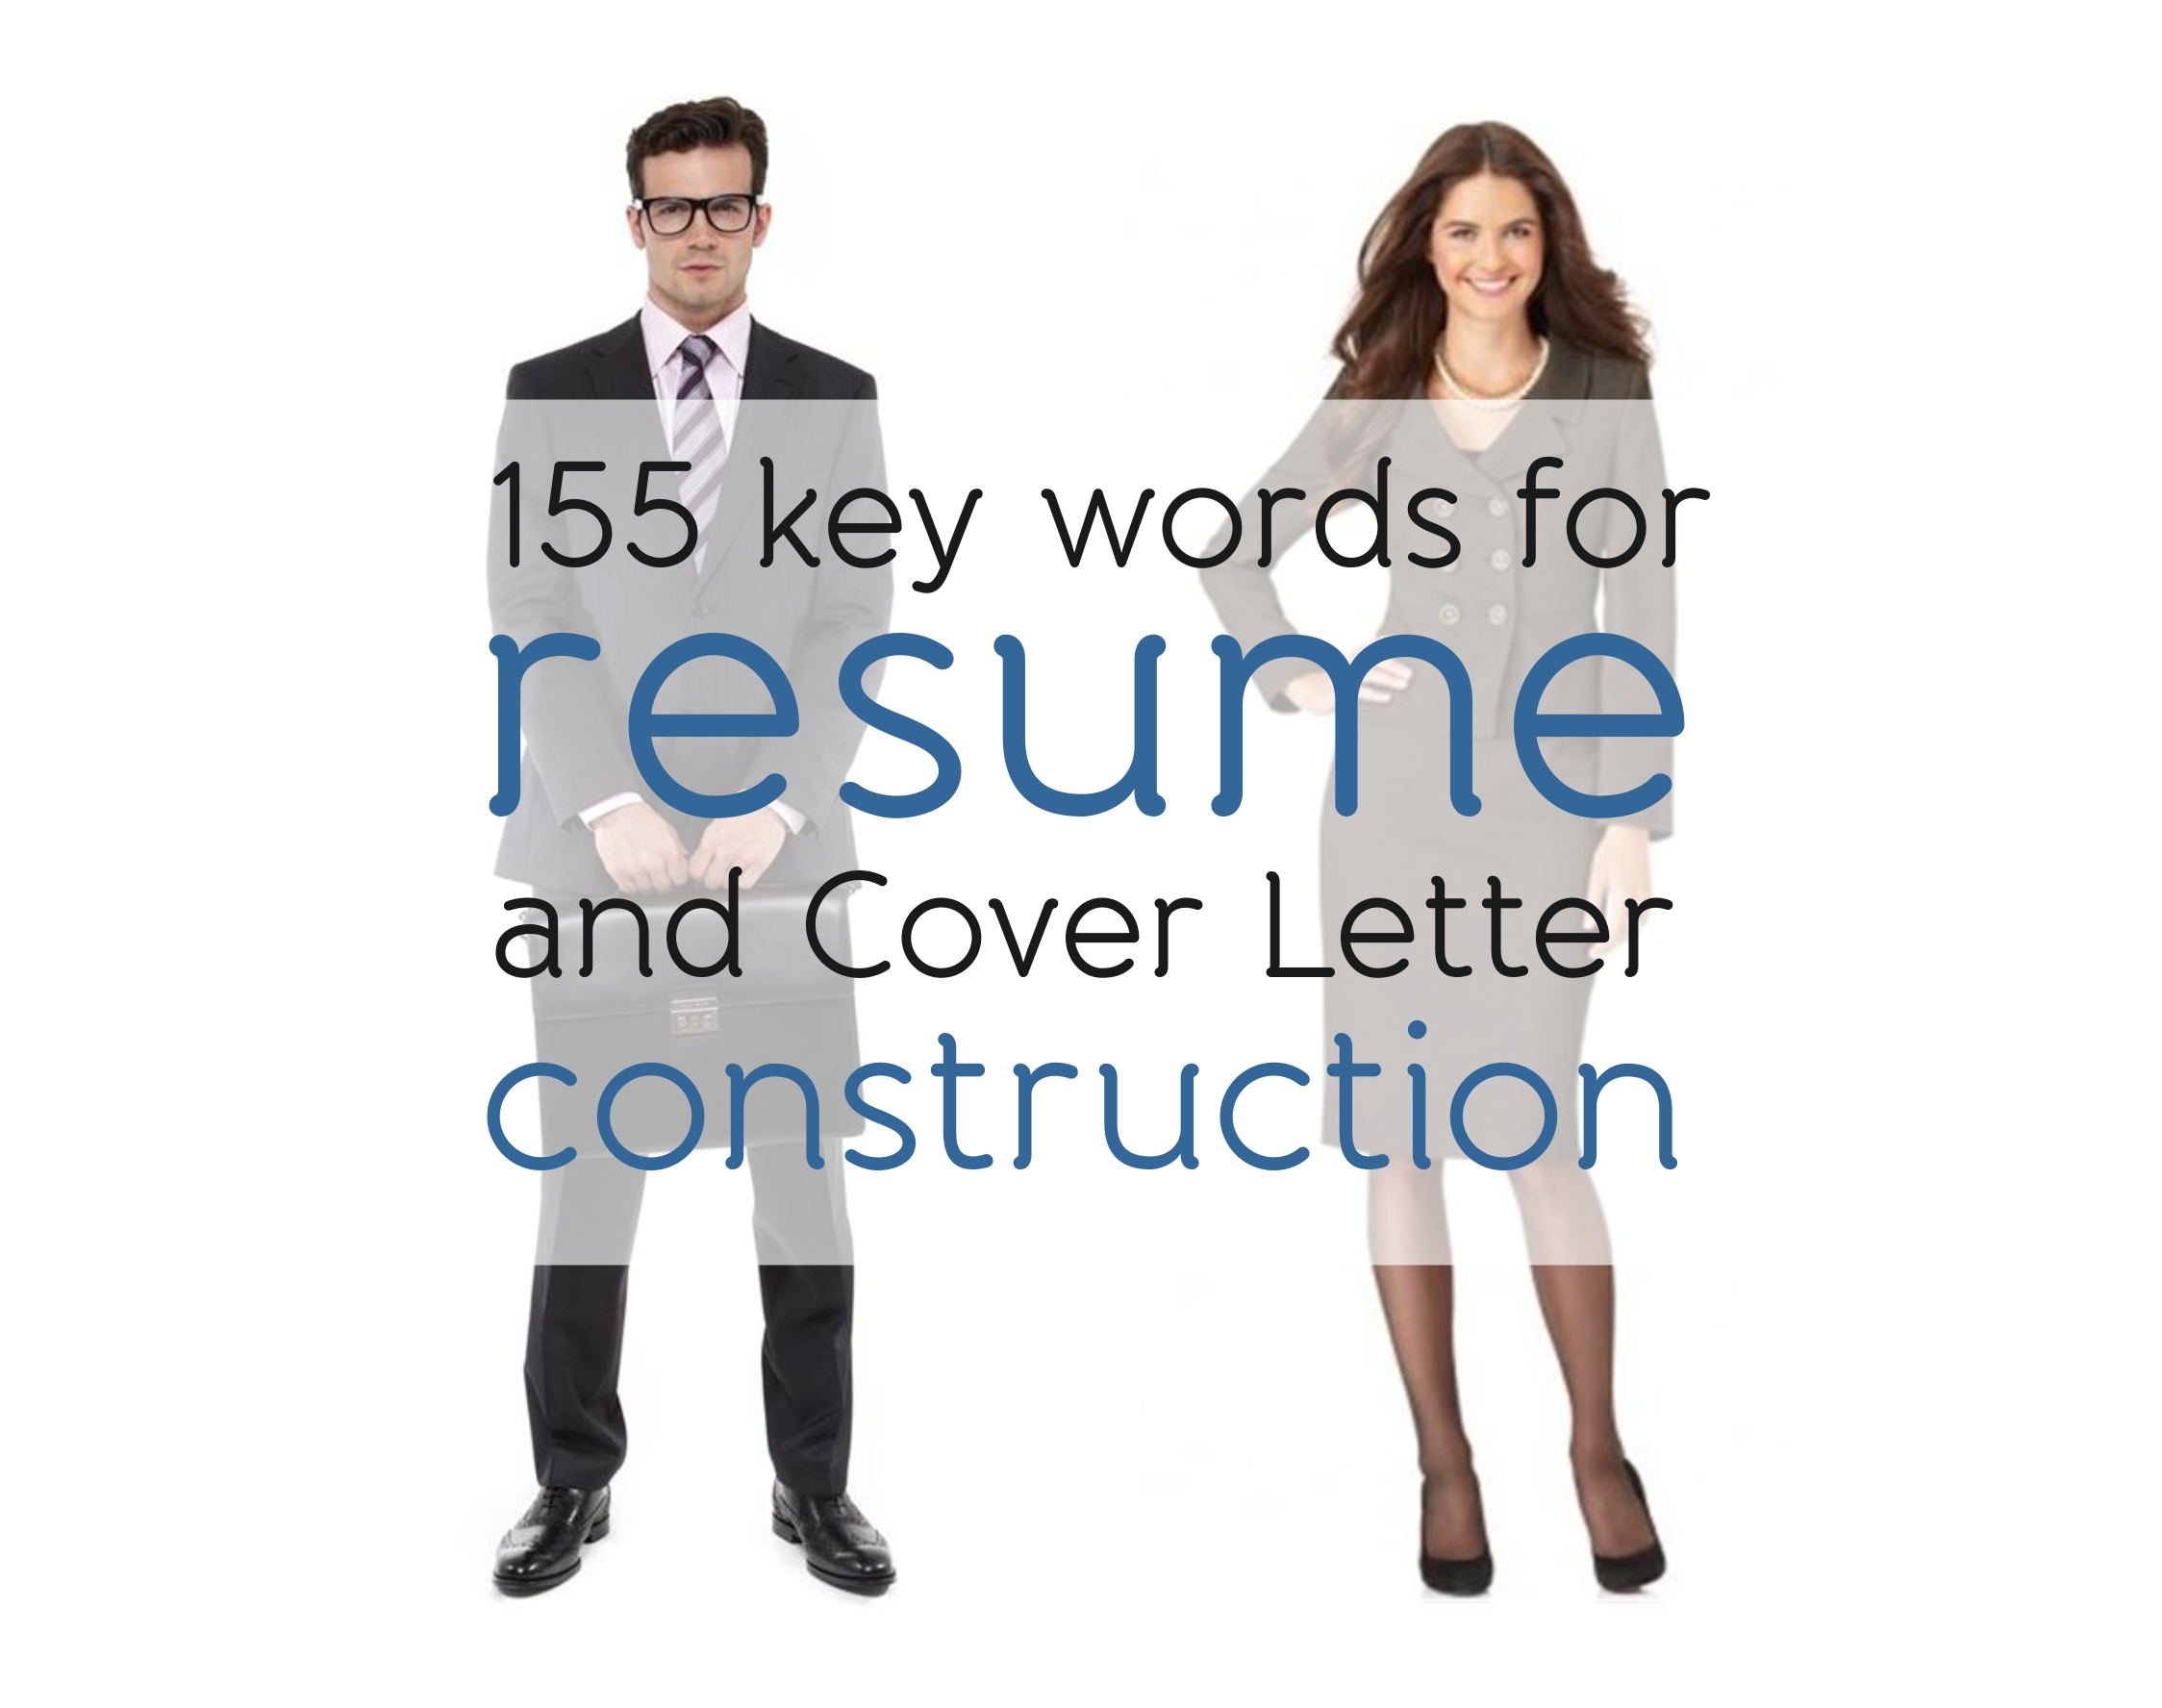 key words for resume and cover letter construction - dental vantage